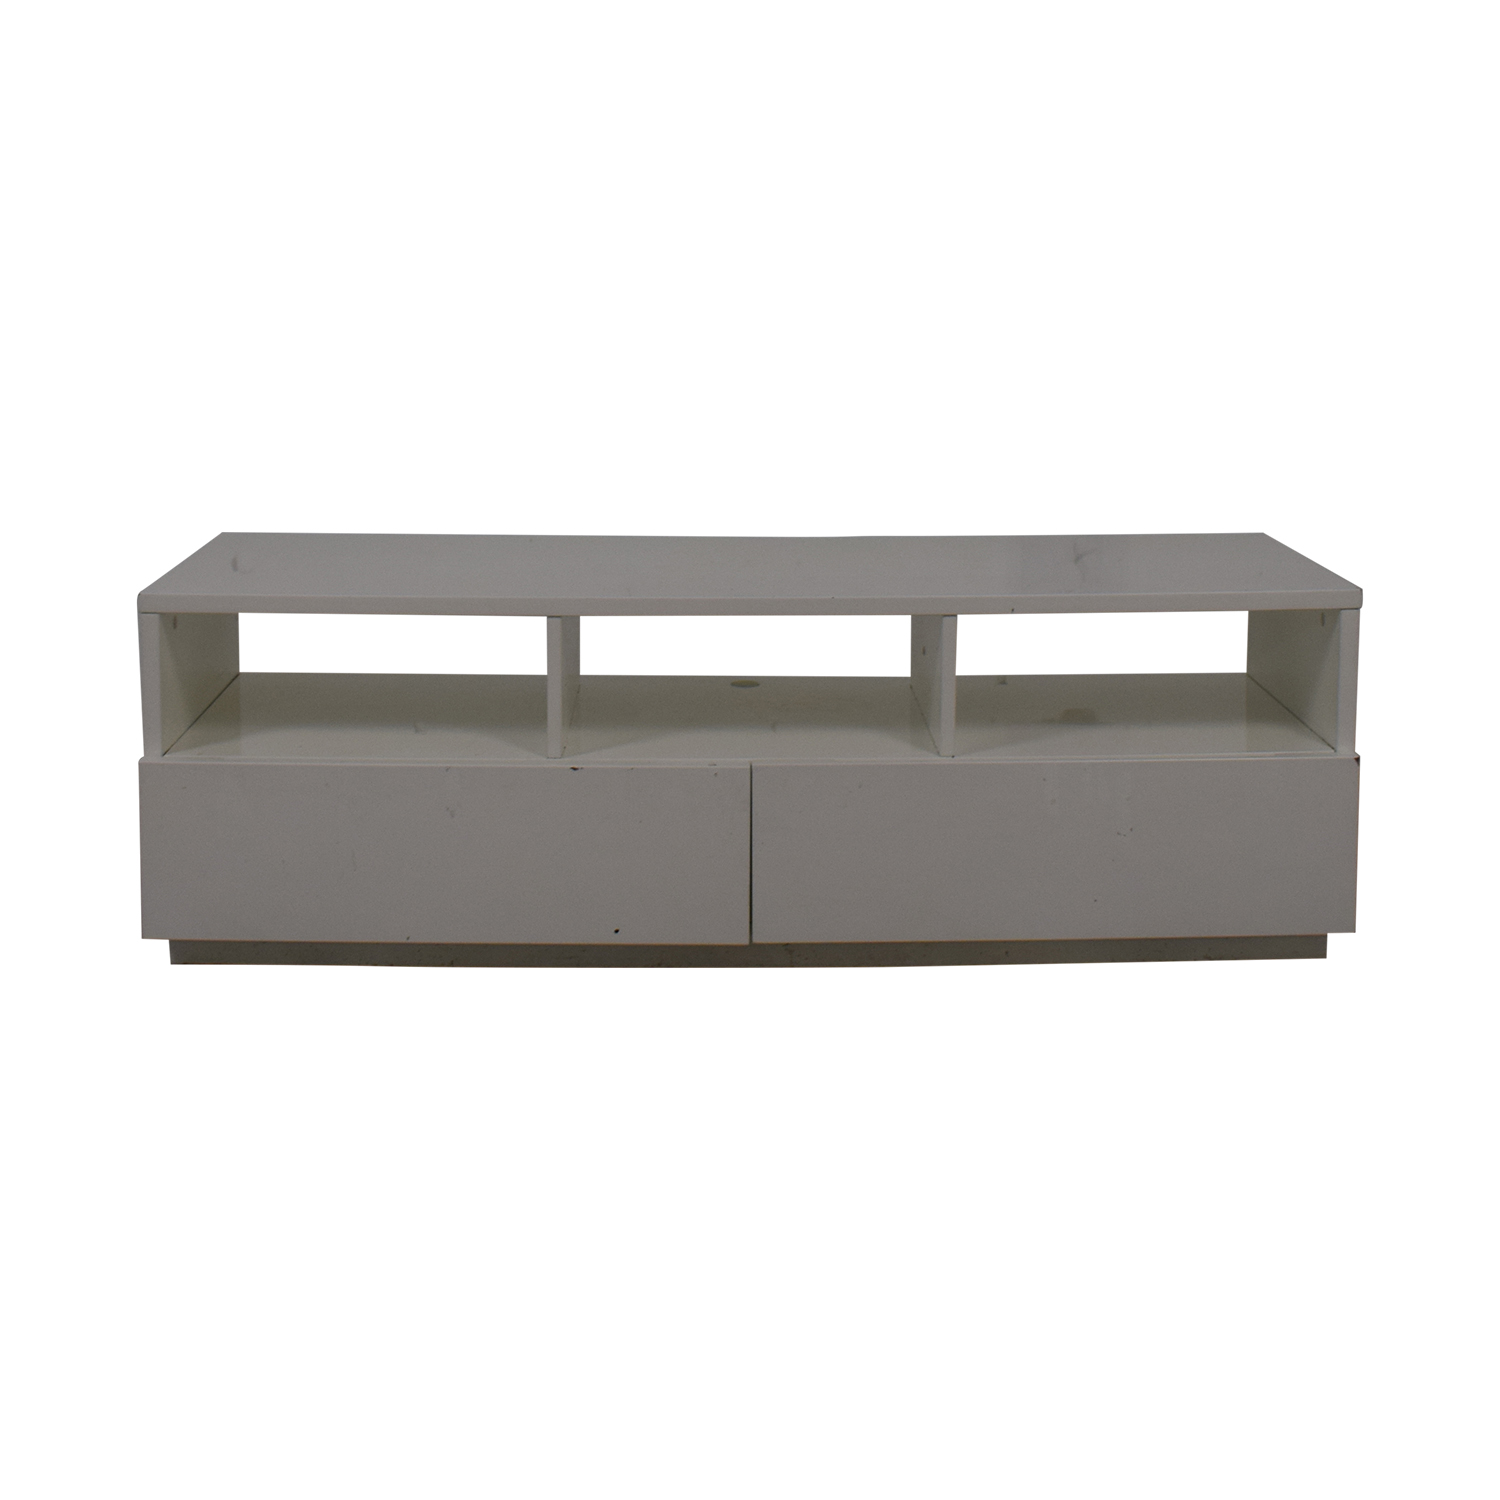 Crate & Barrel CB2 Chill White Media Console dimensions